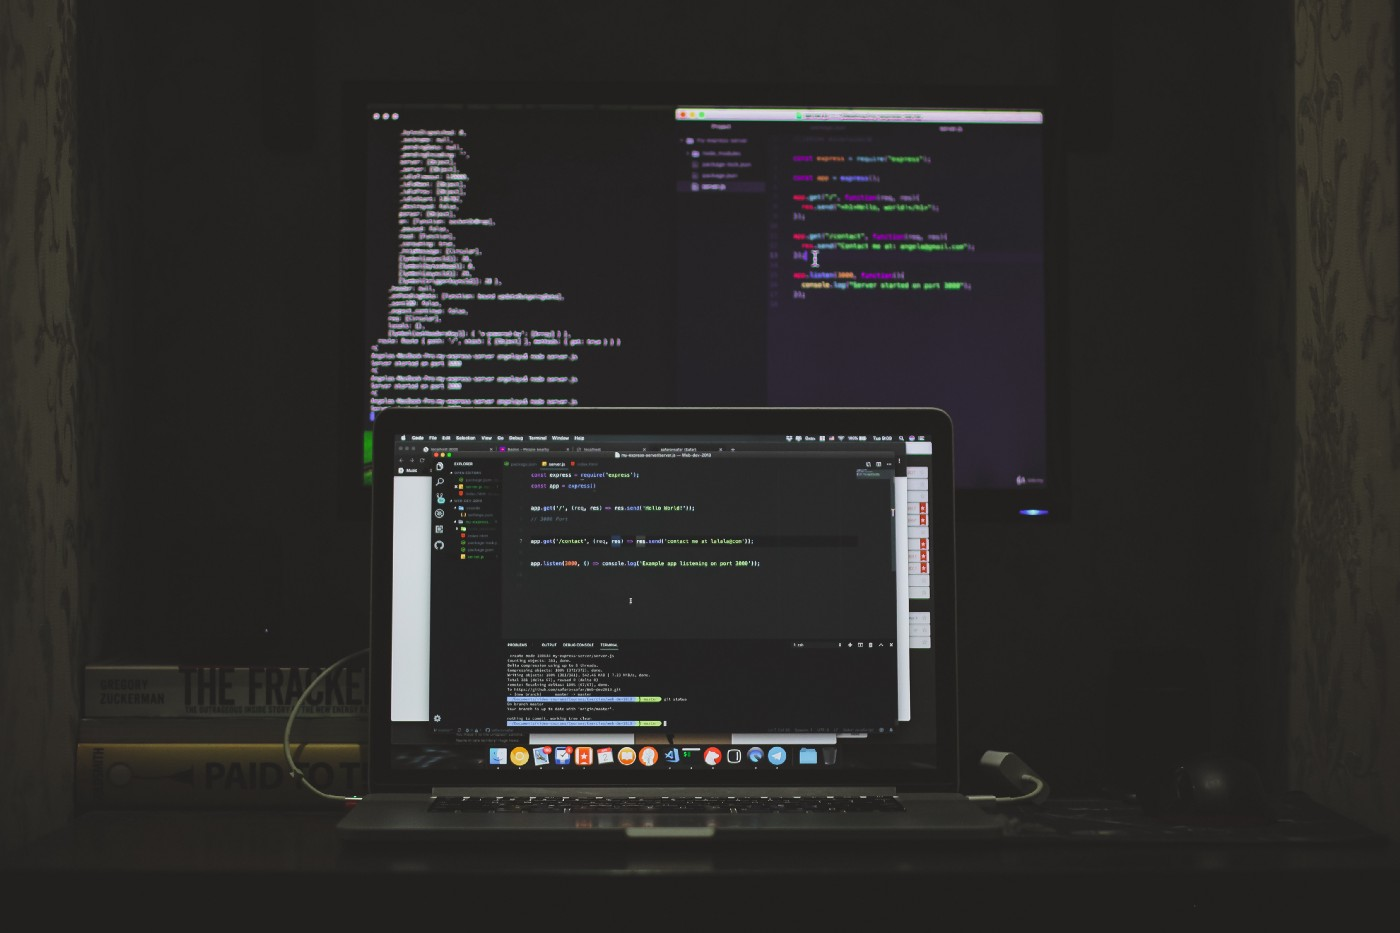 Computer code on two screens